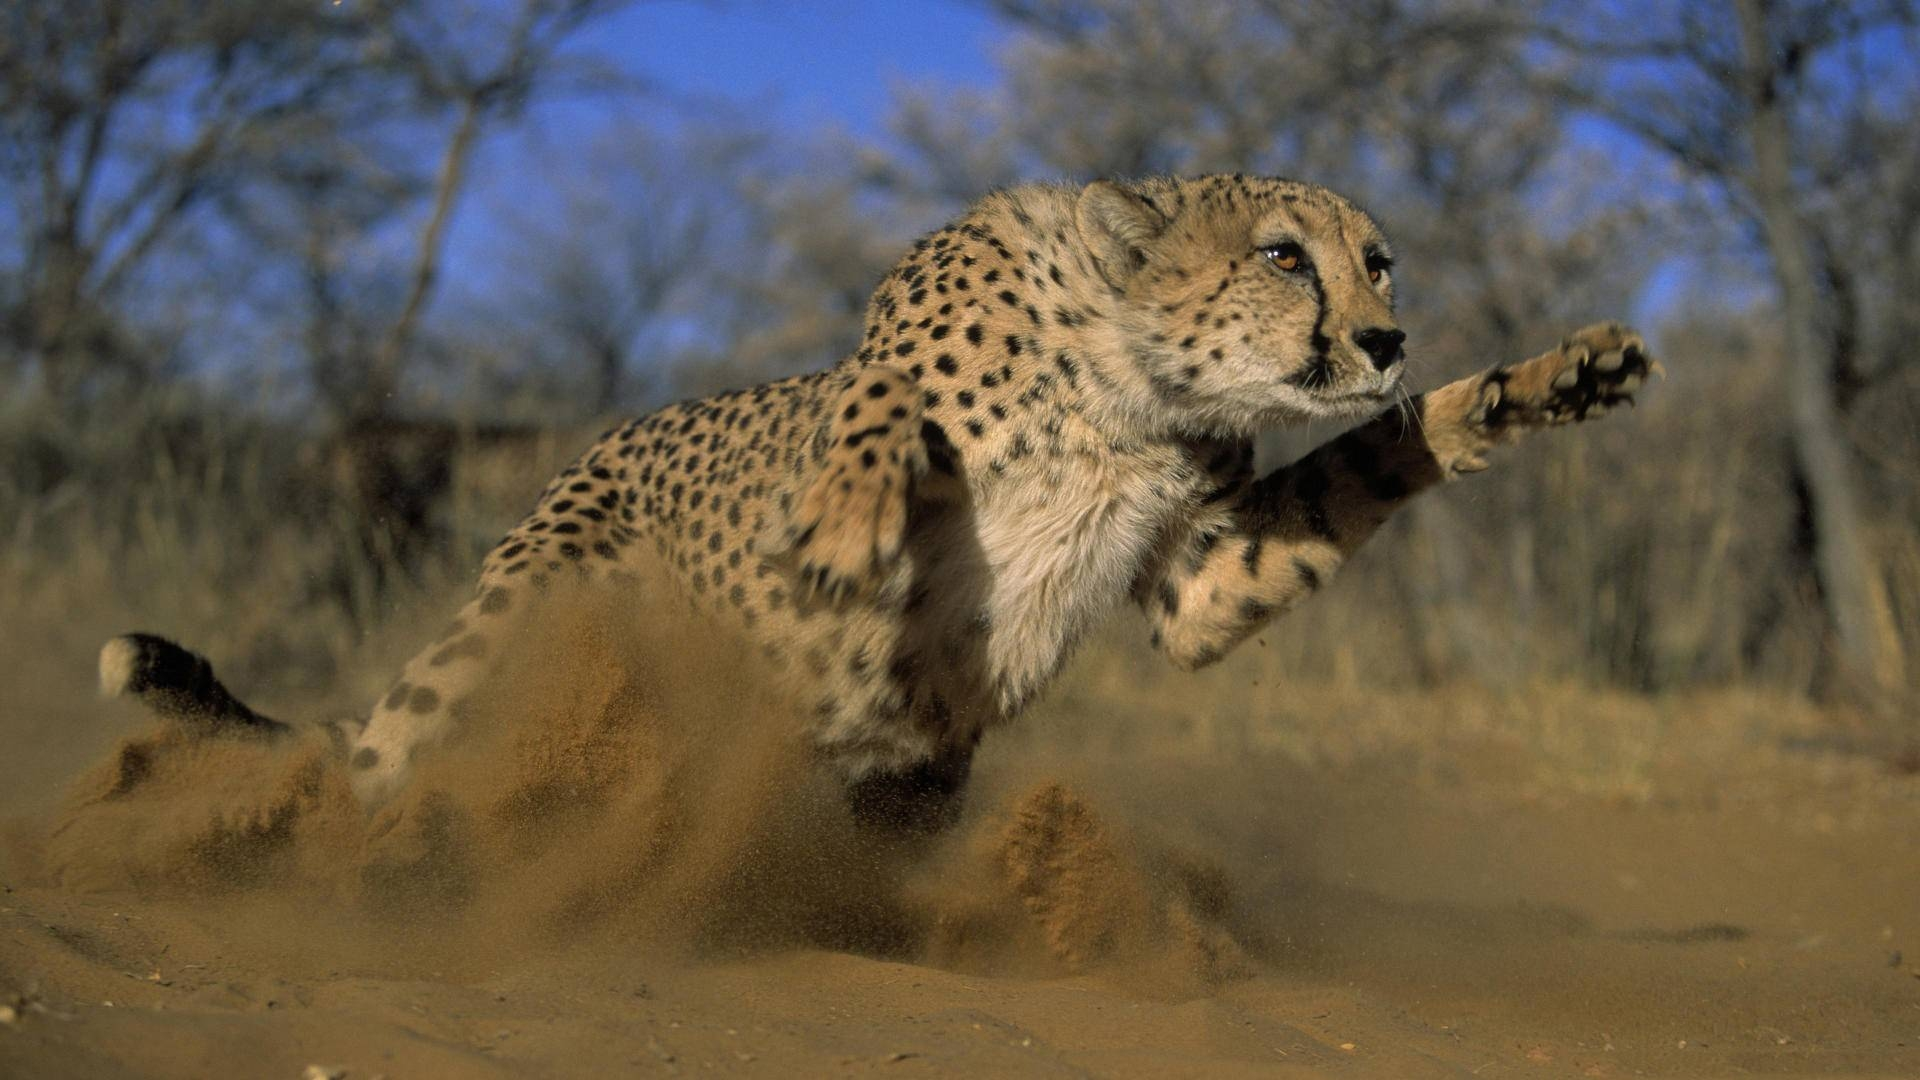 Leopard Chasing Wallpaper